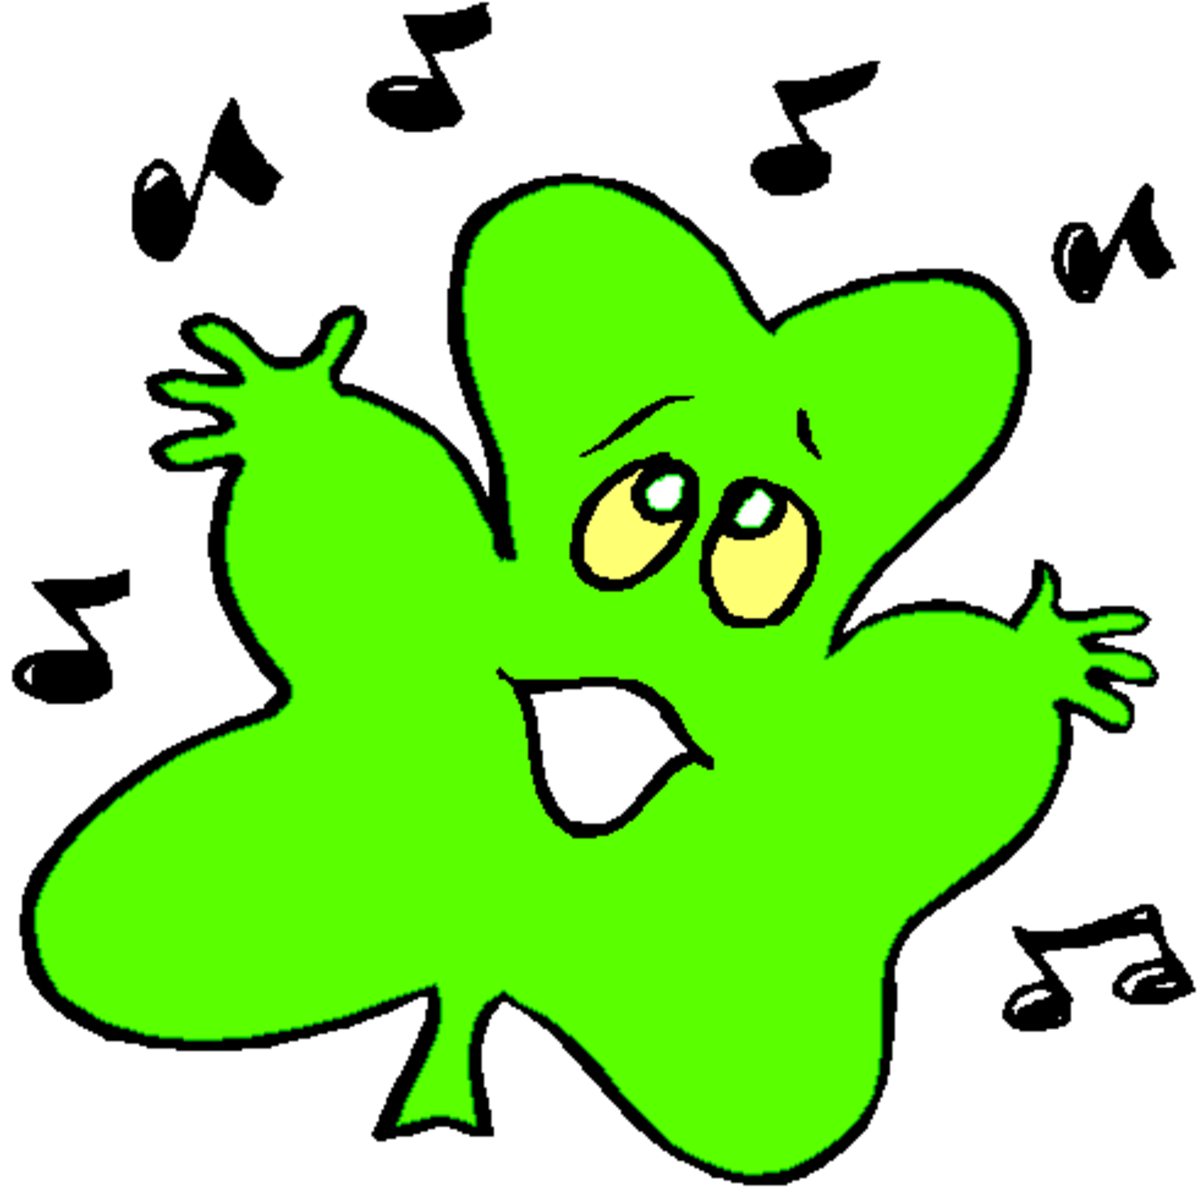 Singing Shamrock Cartoon